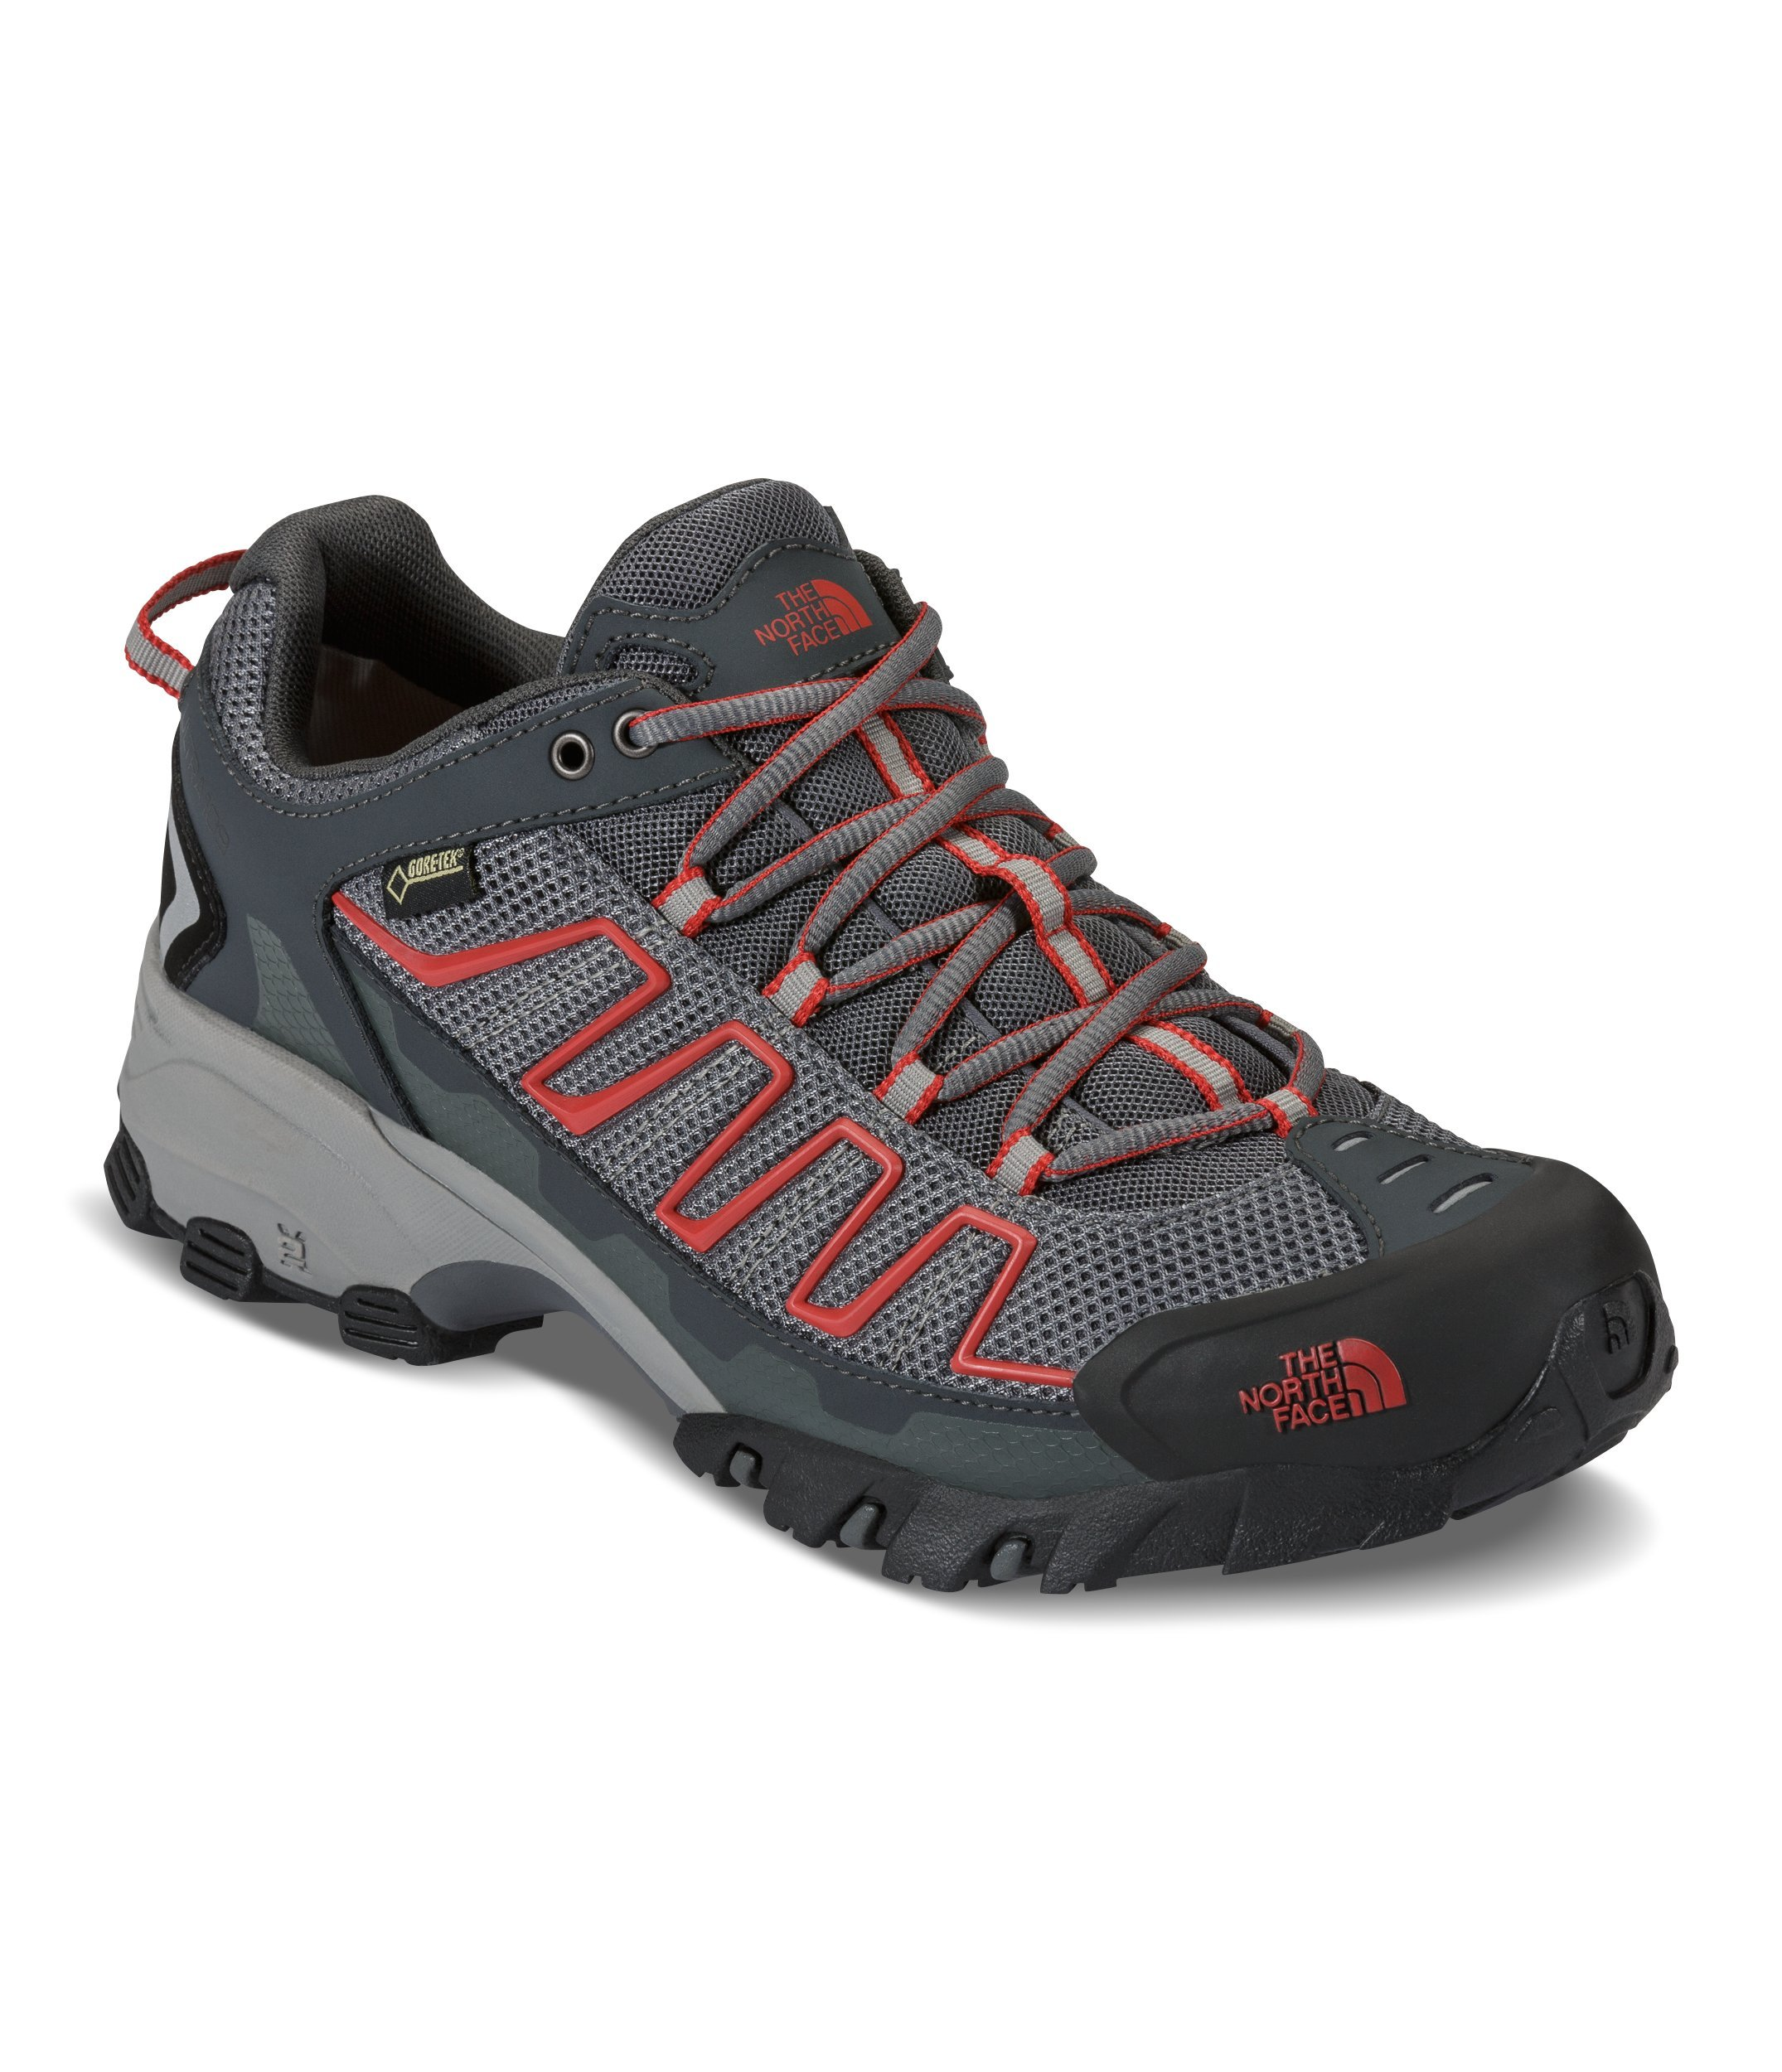 The North Face Mens Ultra 109 GTX Hiking Shoe Zinc Grey/Pompeian Red - 7.5 D(M) US